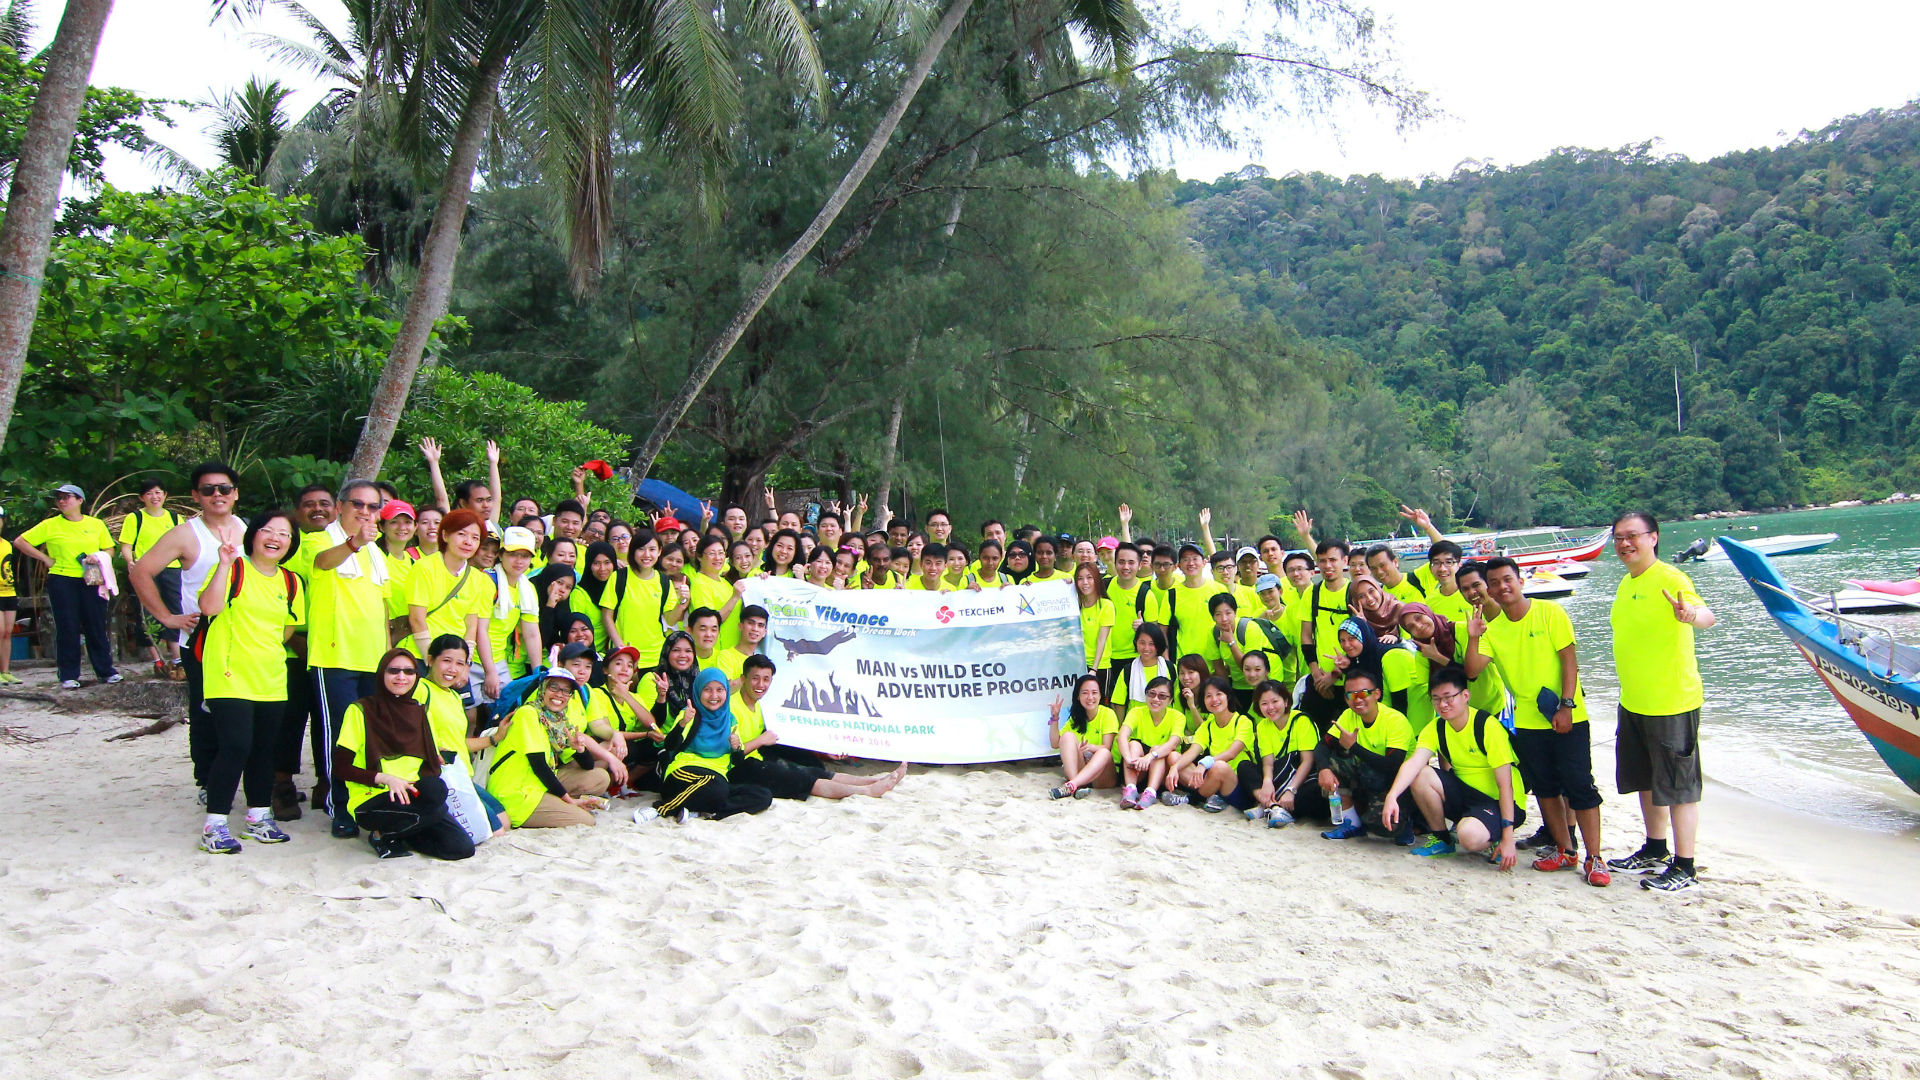 csr - Teambuilding at Penang National Park - 14 May 2016